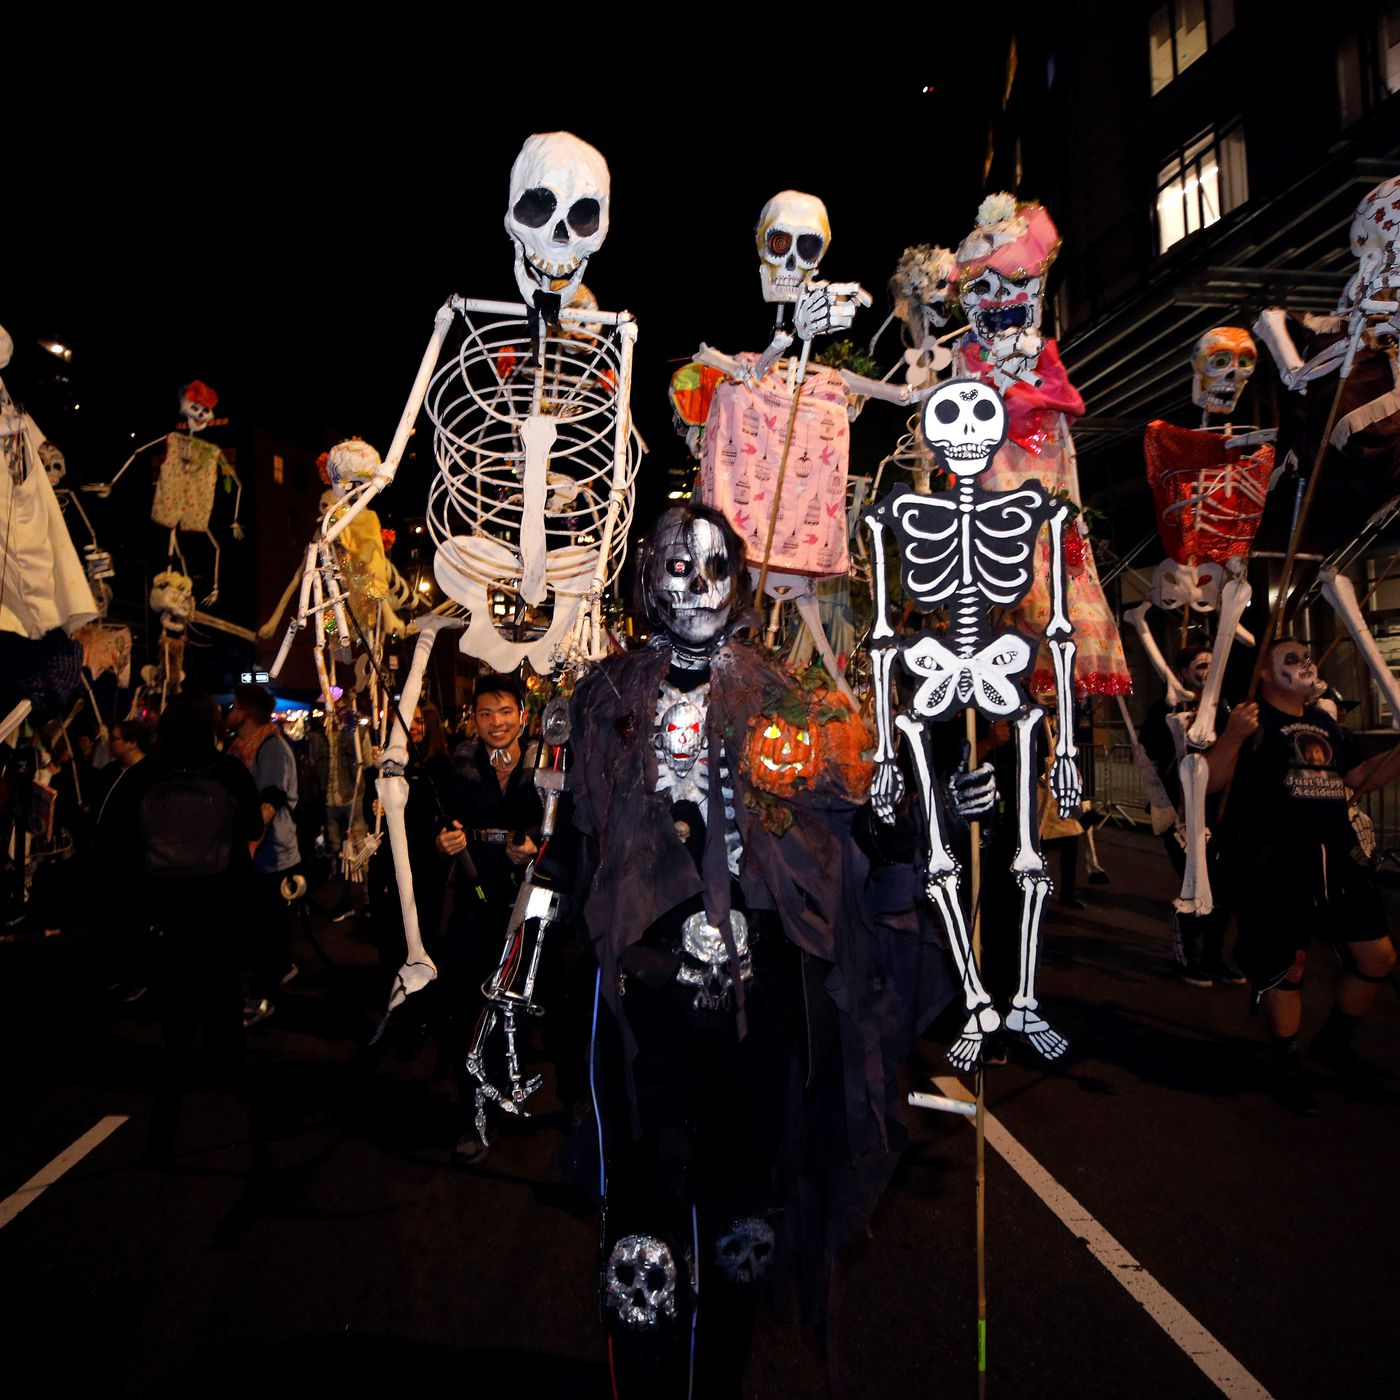 Nyc Halloween Parade 2019 Route Street Closures And More Curbed Ny